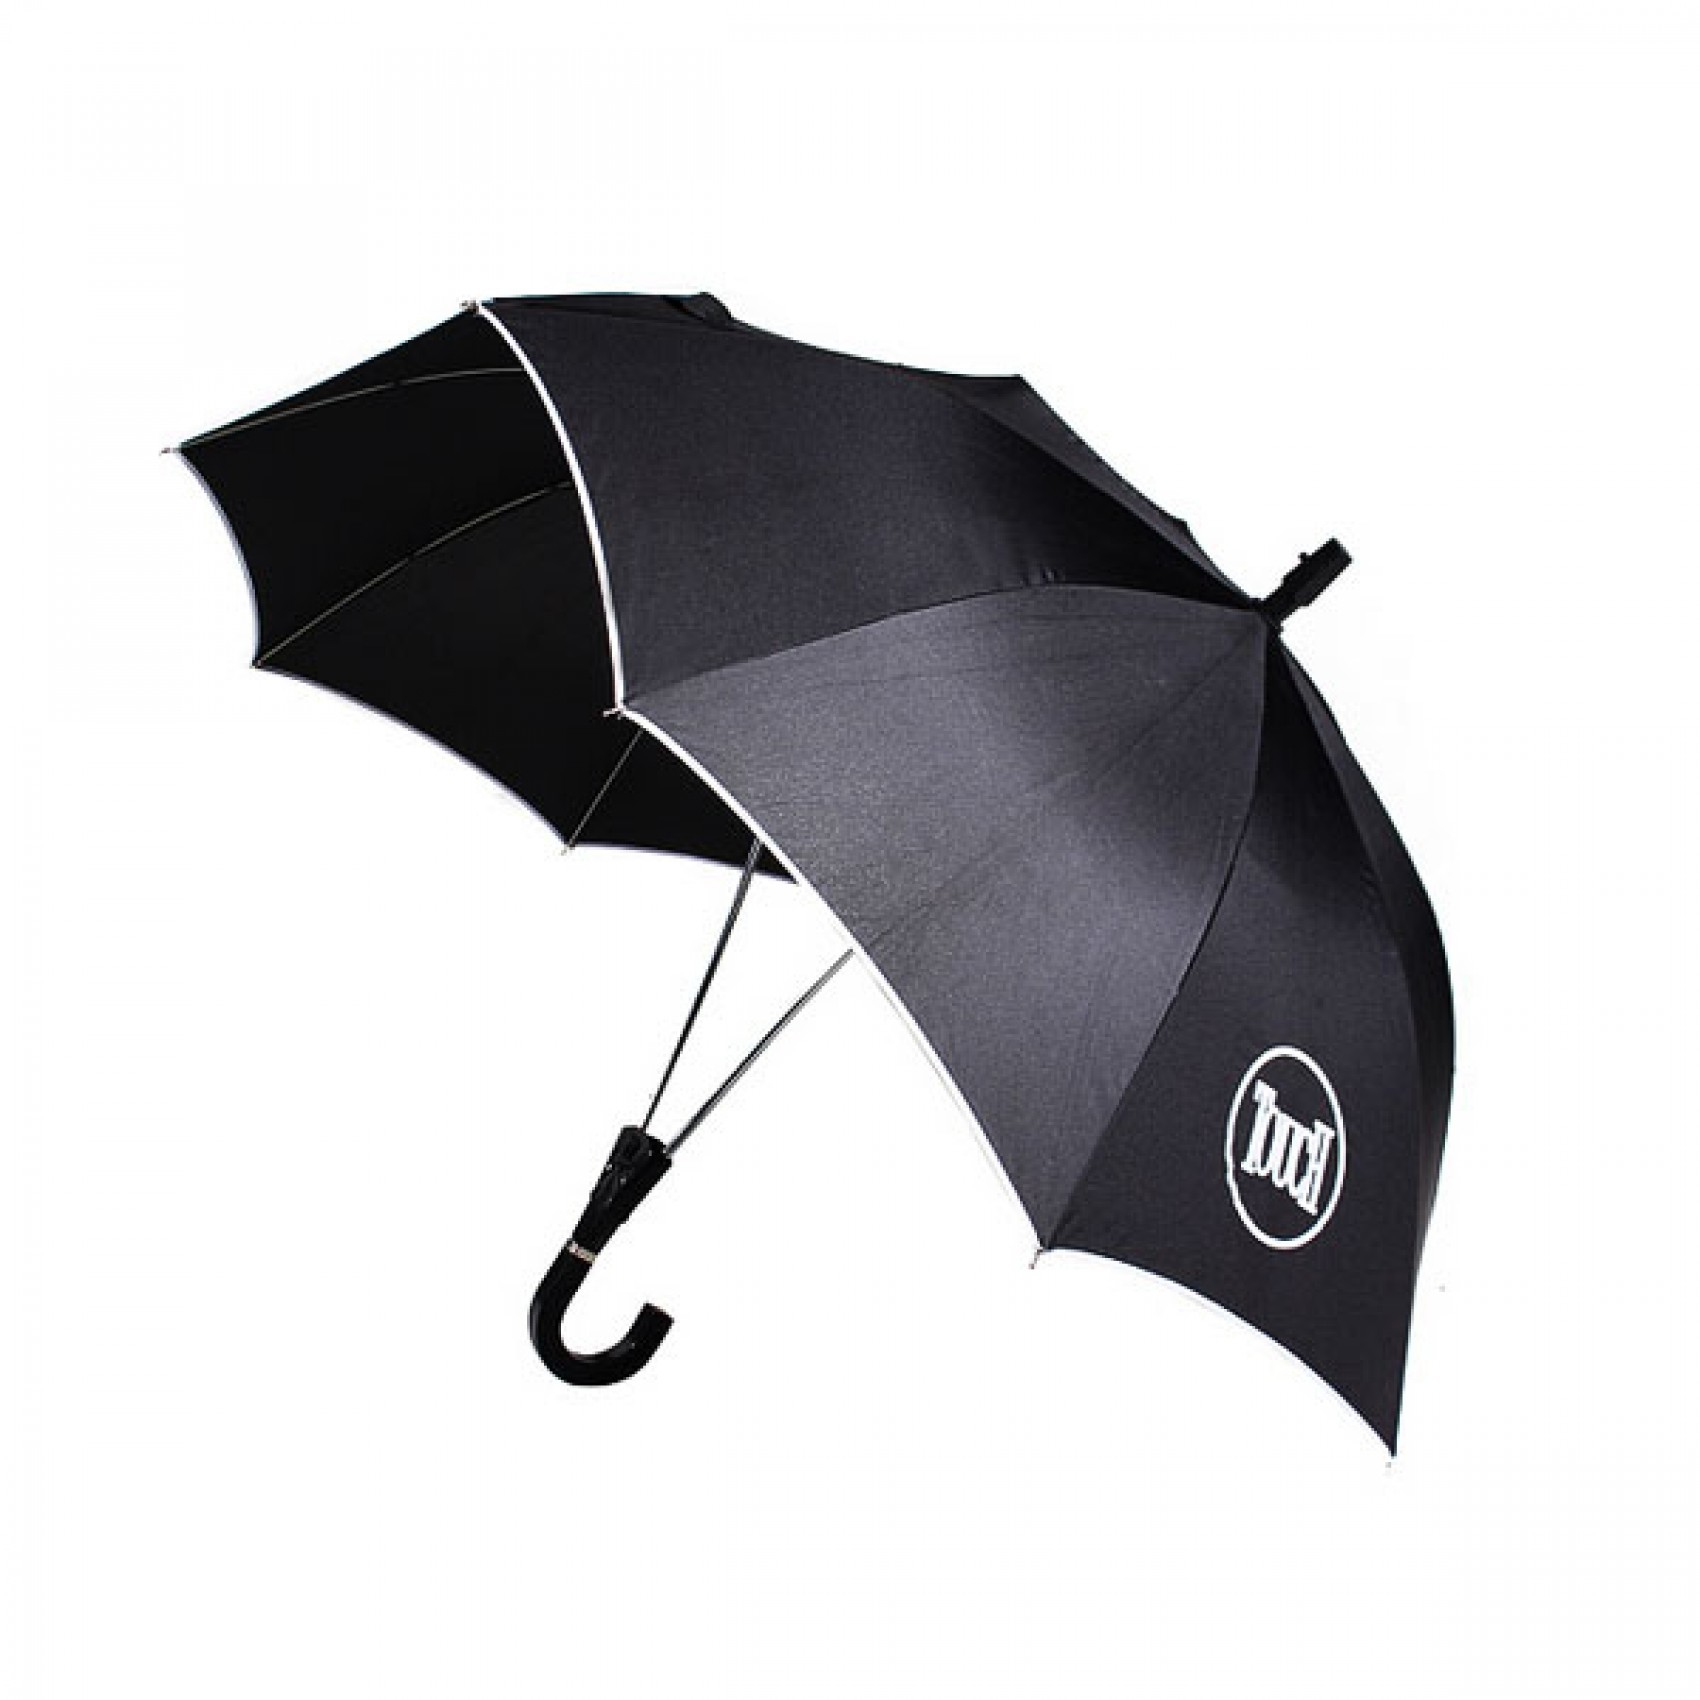 Lovers Umbrella - Black